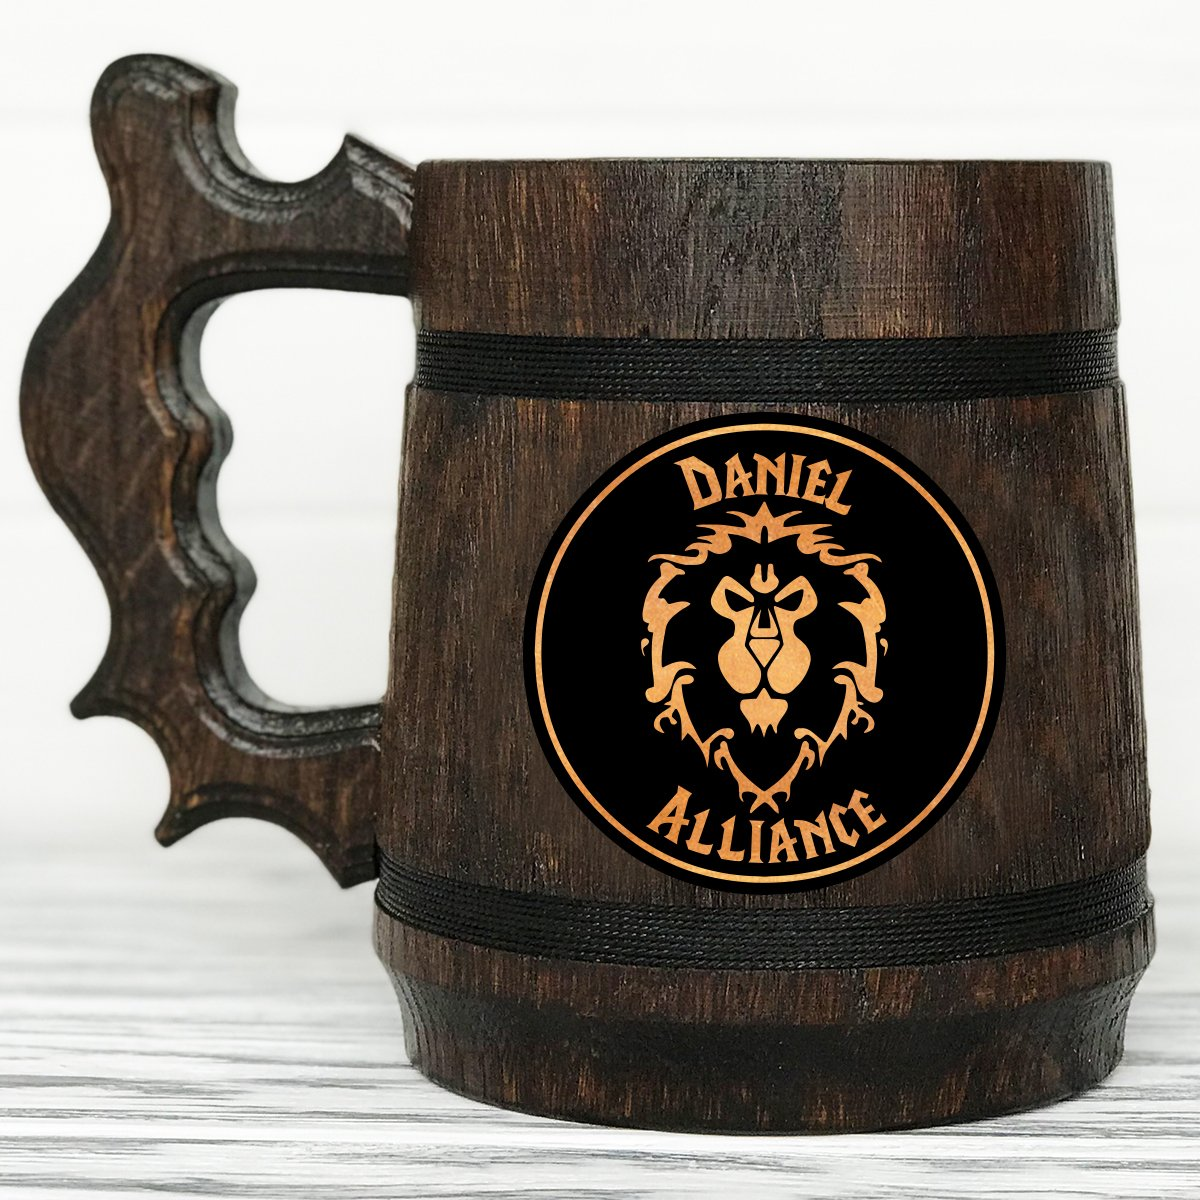 Custom WOW Gift World Of Warcraft Mug Alliance Mug Gamer Gift World Of Warcraft Gifts Custom Beer Steins Wooden Beer Tankard #68//0.6L//22 ounces Personalized Alliance Gift